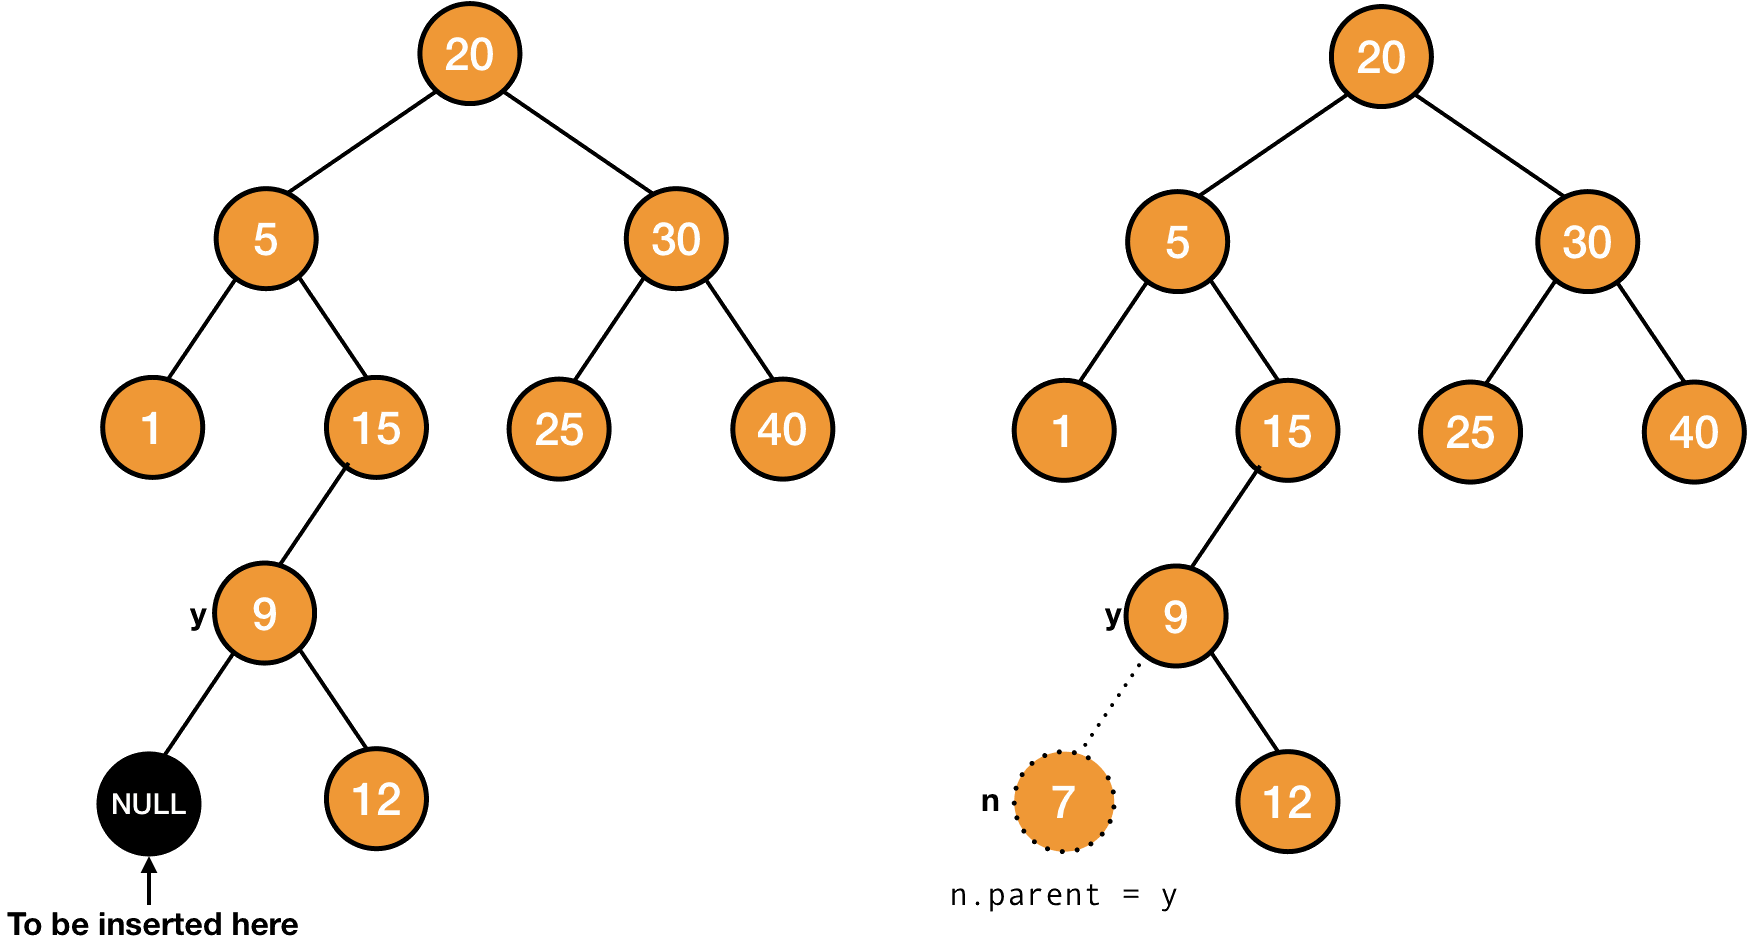 changing parent in insertion in a binary search tree